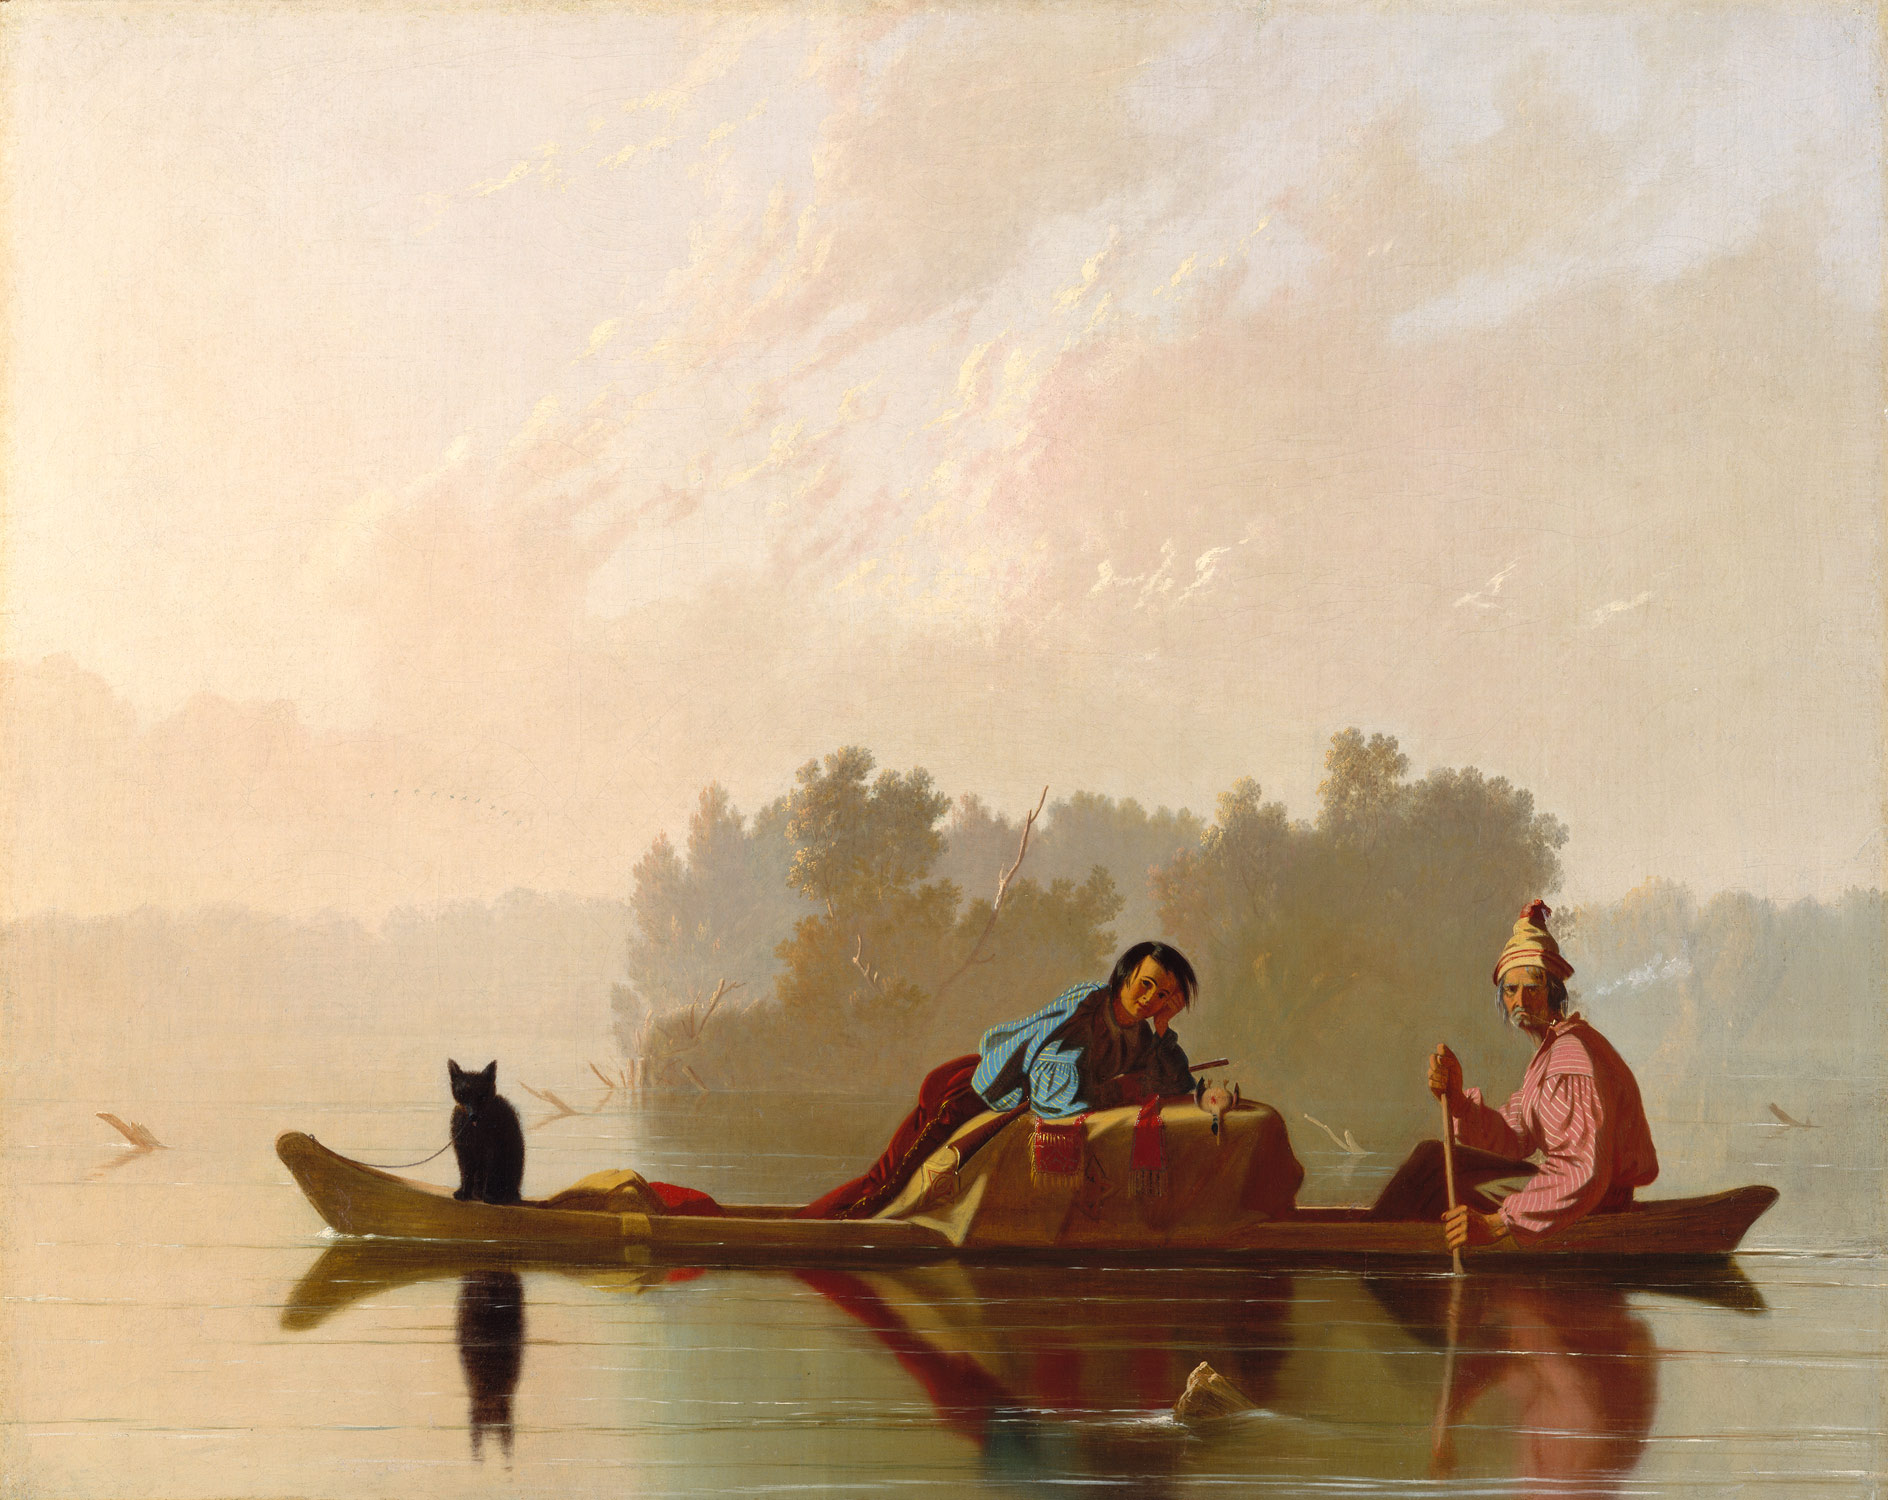 by George Caleb Bingham